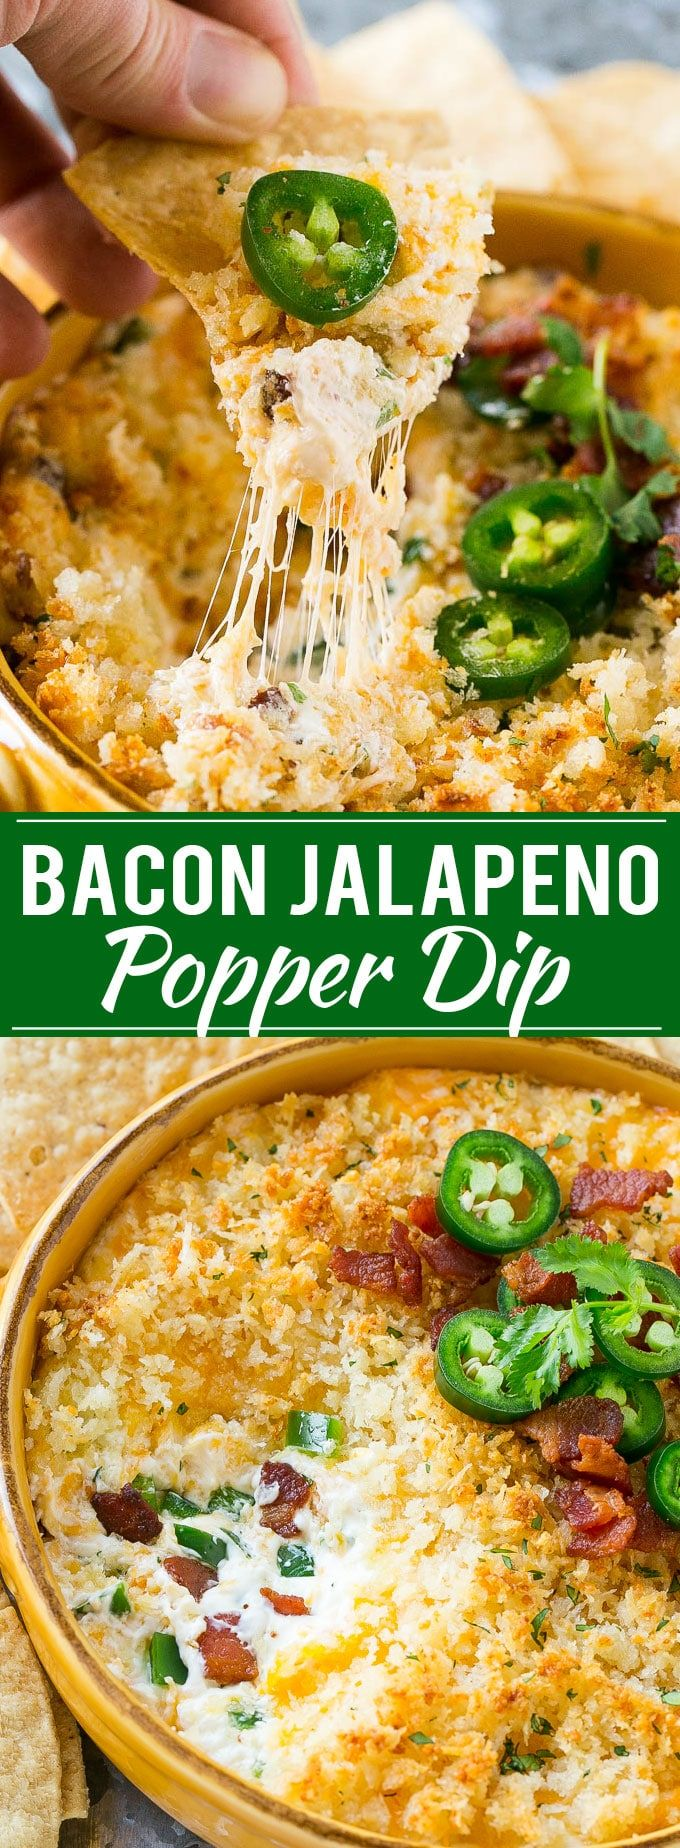 Jalapeno Popper Dip with Bacon Recipe | Cheesy Dip | Easy Appetizer | Jalapeno Poppers | Bacon Dip